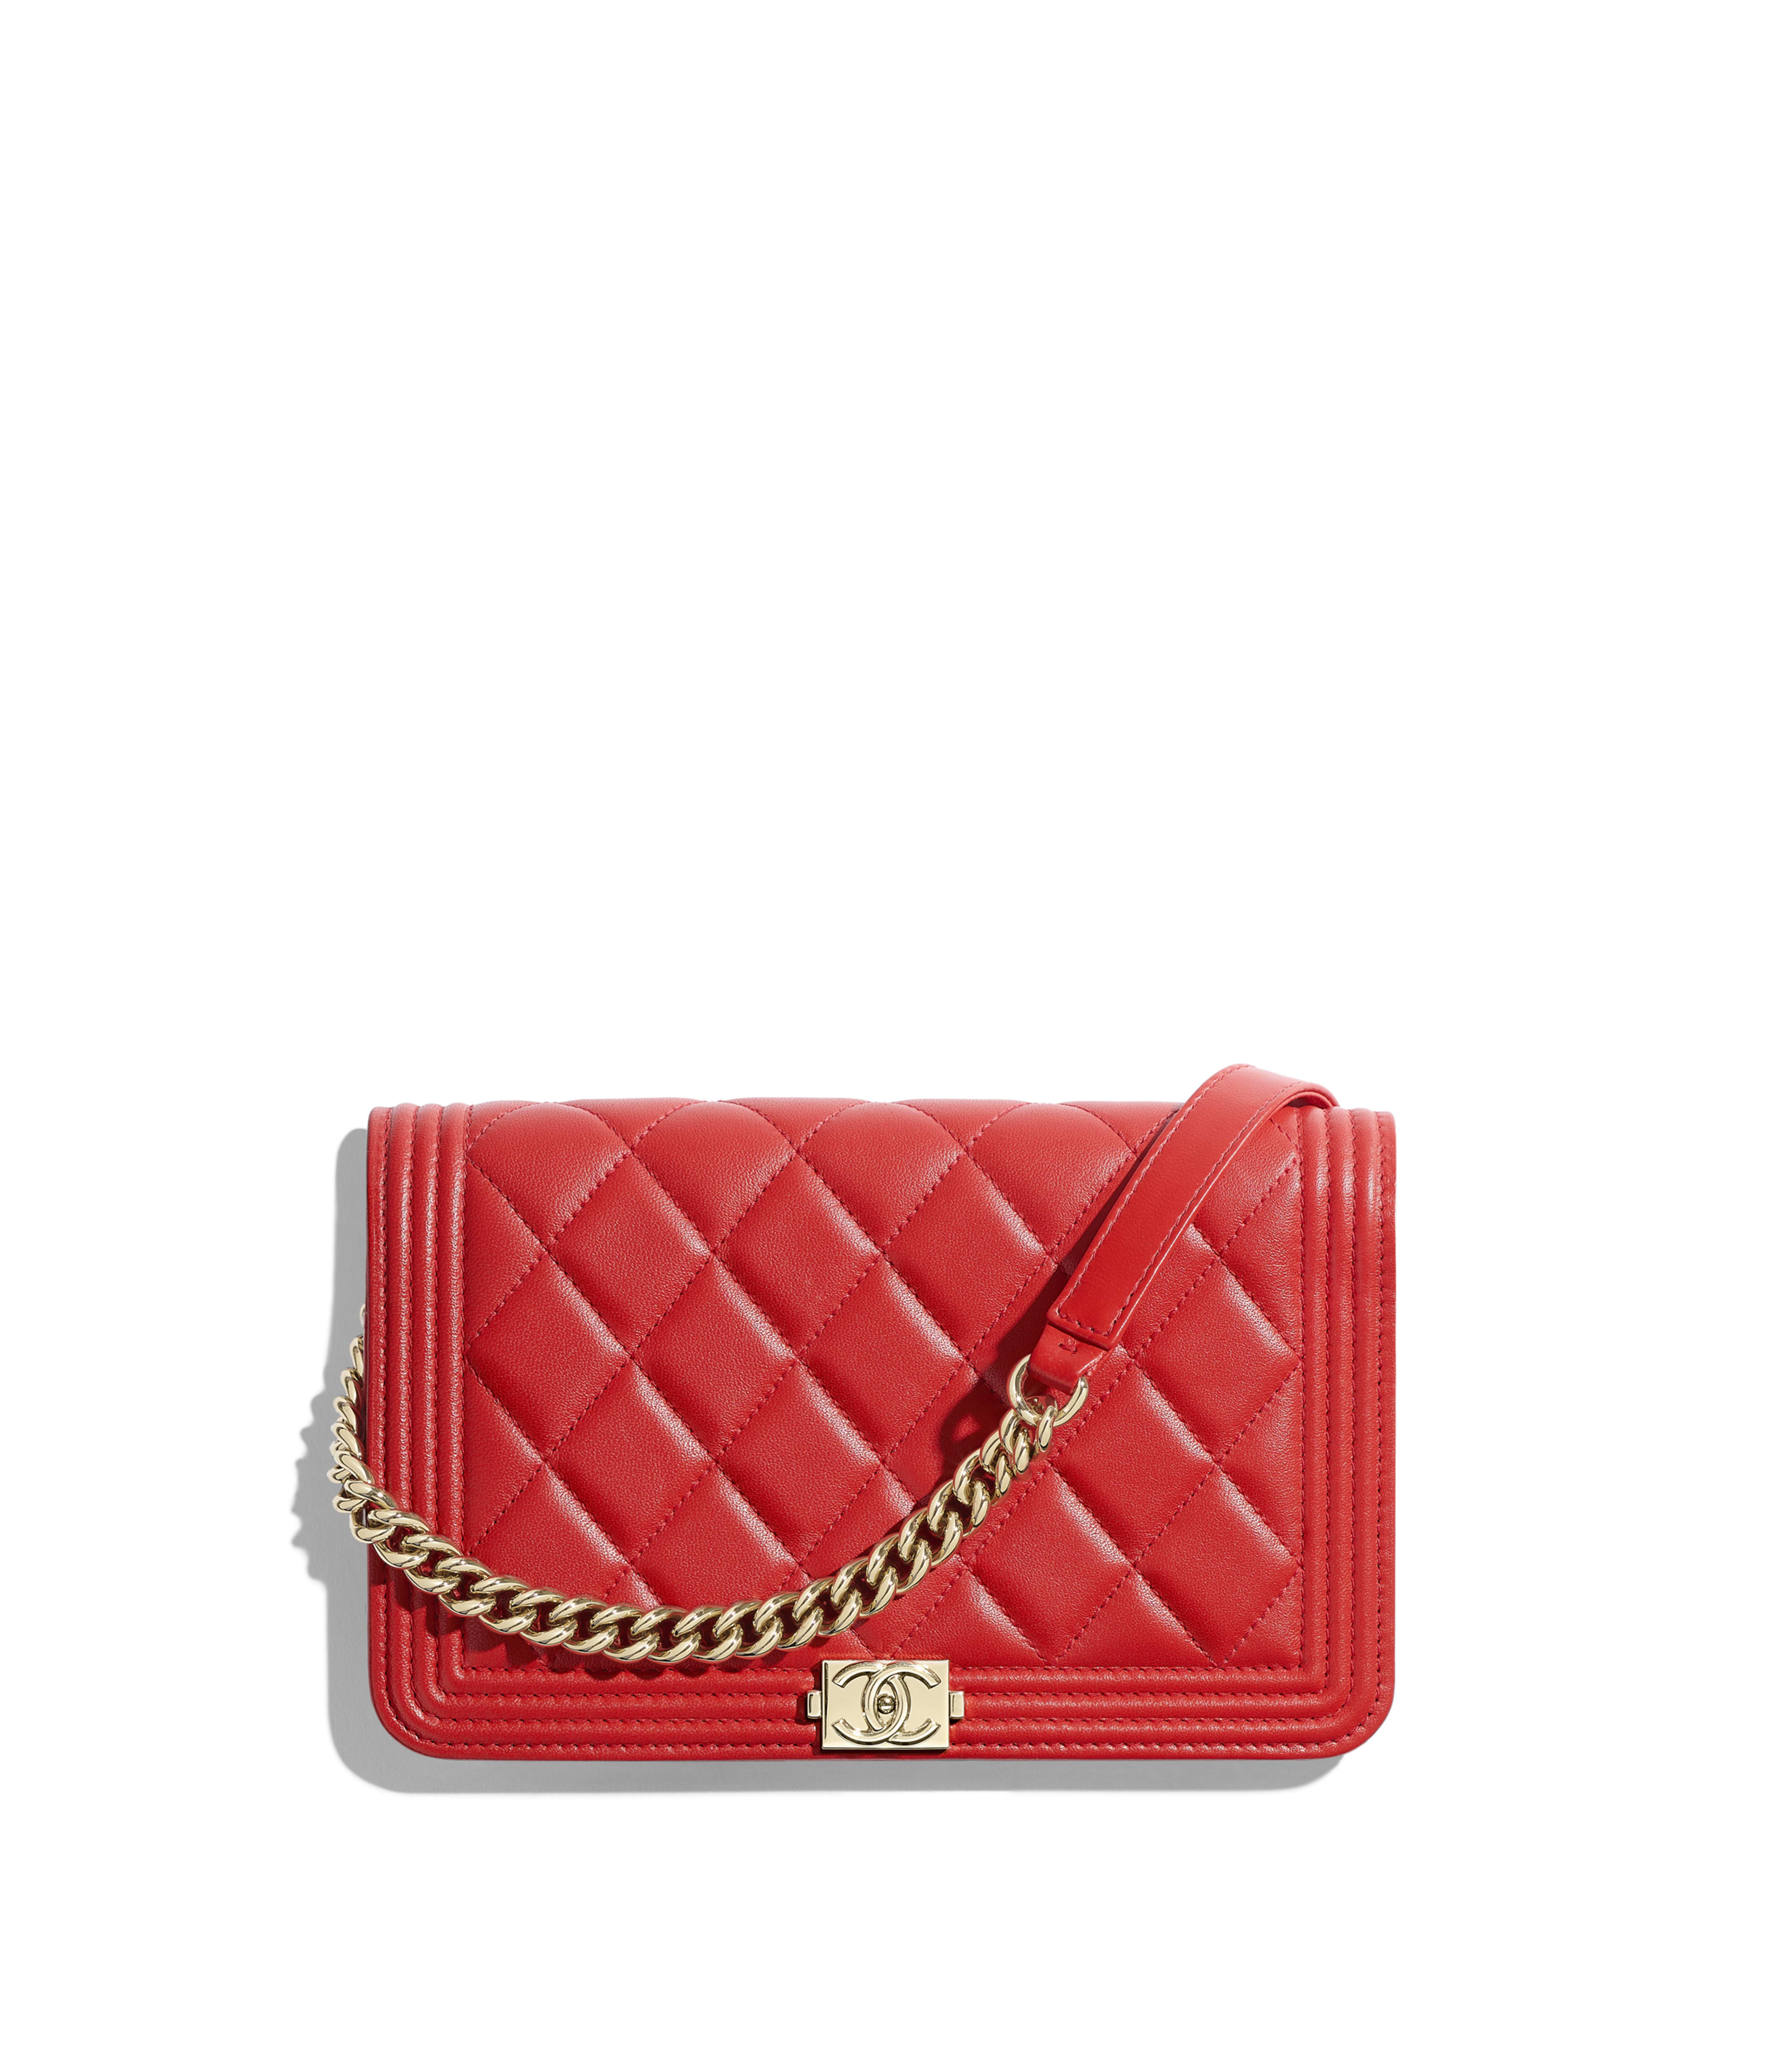 735cb608a650 BOY CHANEL Wallet on Chain Lambskin & Gold-Tone Metal, Red Ref.  A81969Y04059N0413